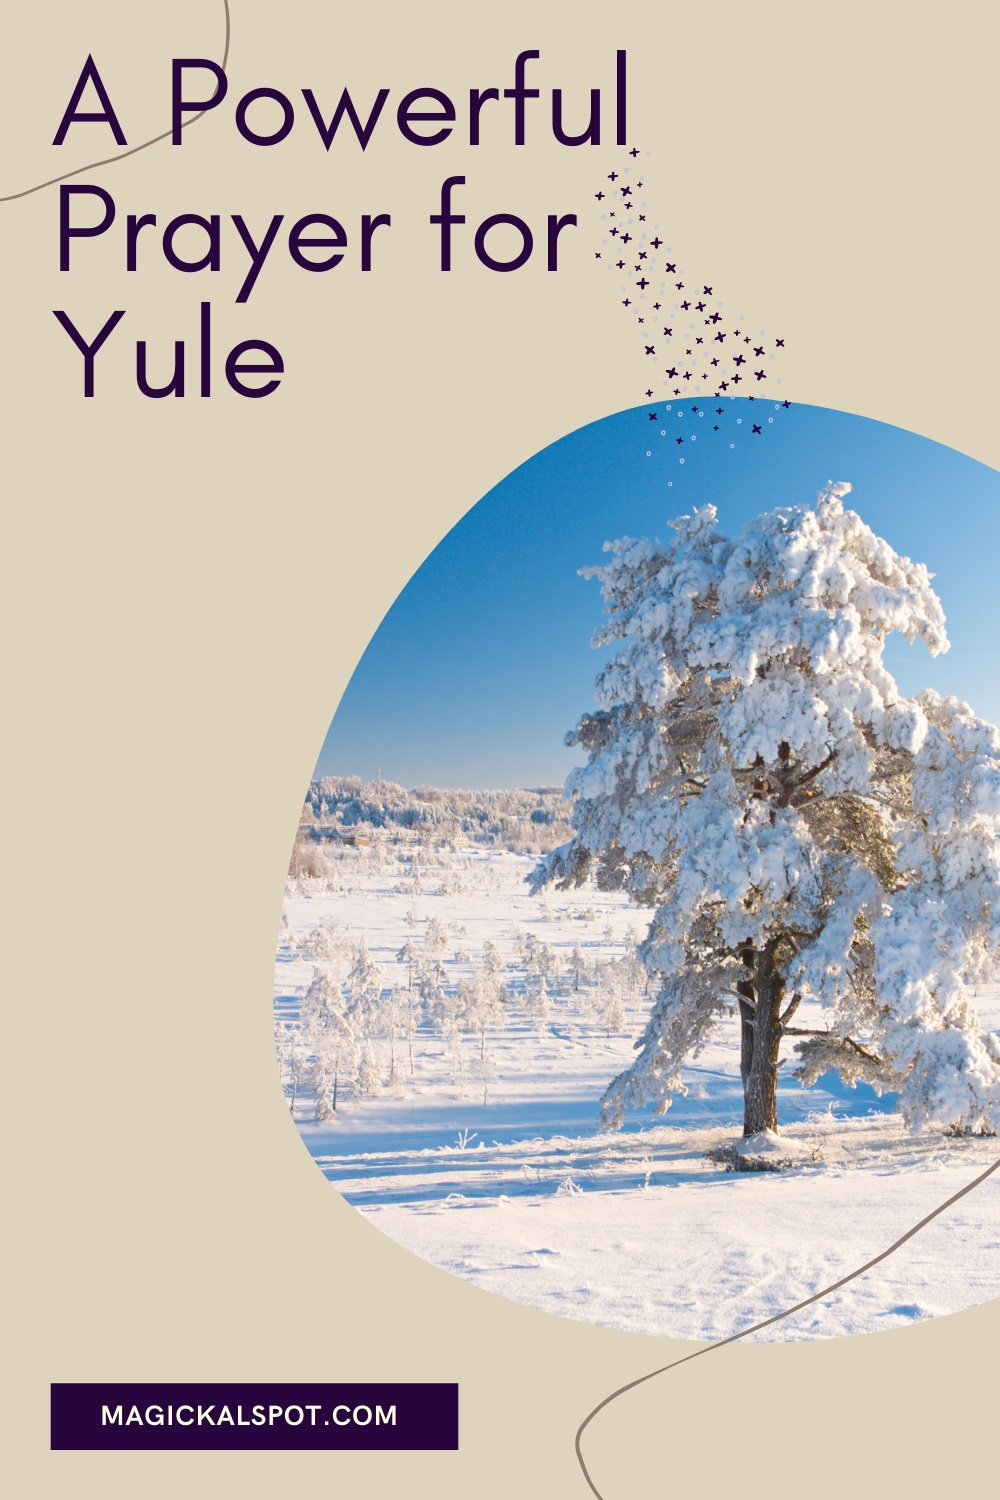 A Powerful Prayer for Yule by Magickal Spot